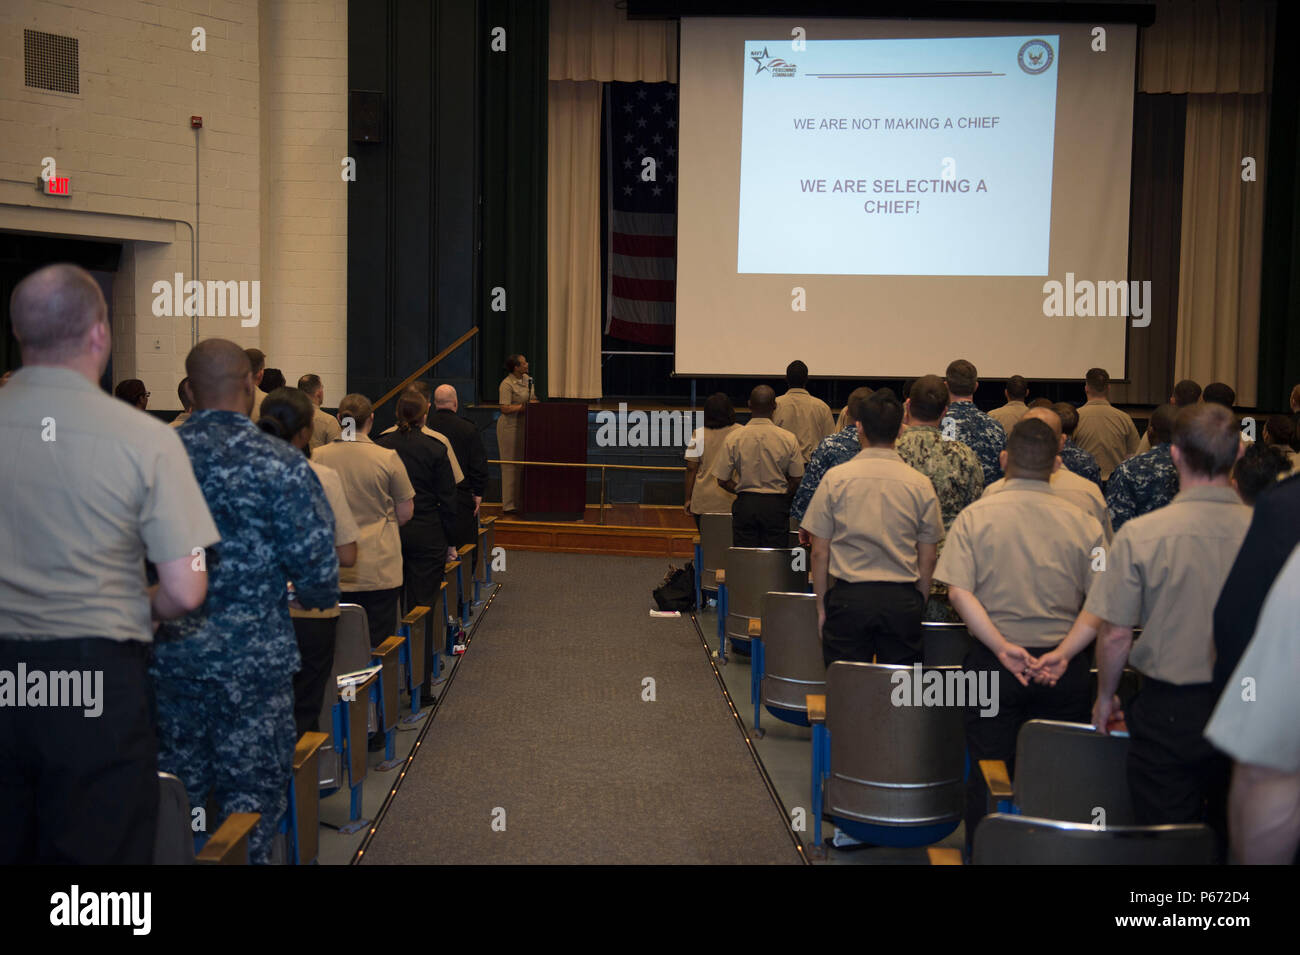 160511-N-TA425- 240 NORFOLK (May 11, 2016) Sailors from the Hampton Roads area attend the ninth annual leadership symposium hosted by Naval Station Norfolk's First Class Petty Officer Association (FCPOA).  FCPOA established the event as a way to help Sailors further their careers, network and get leadership guidance.  (U.S. Navy photo by Mass Communication Specialist 2nd Class Erica Yelland/Released) - Stock Image